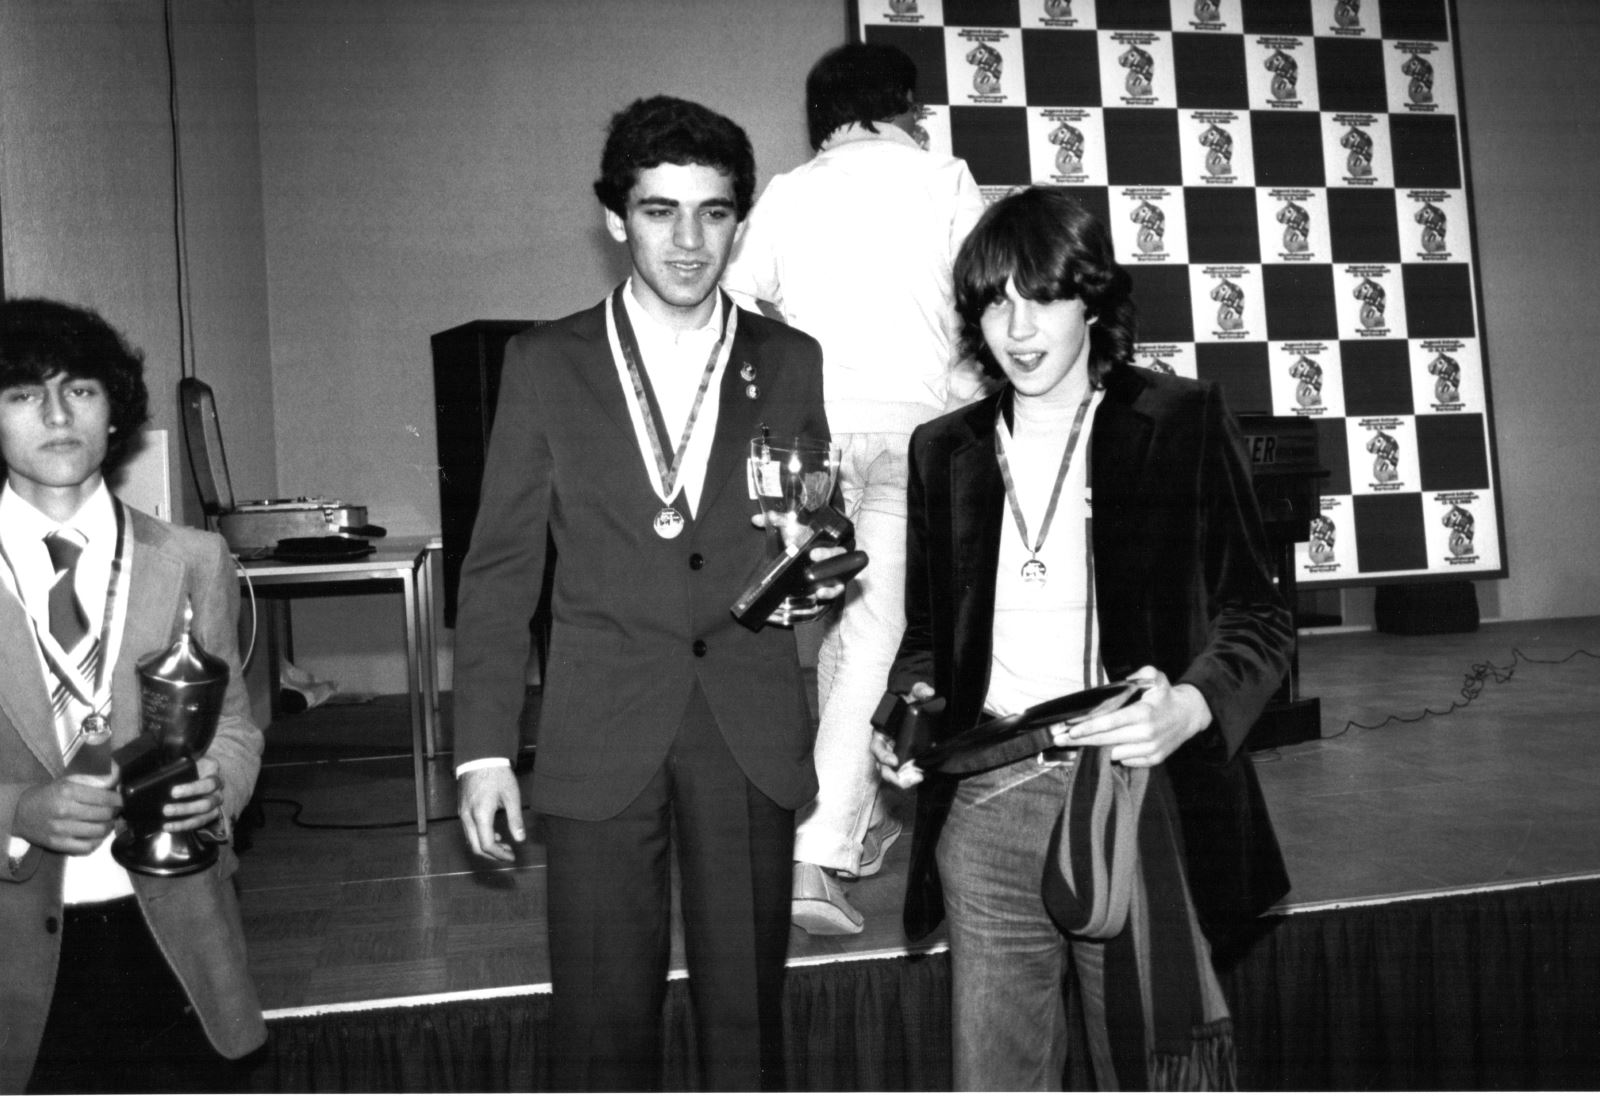 Kasparov and Short